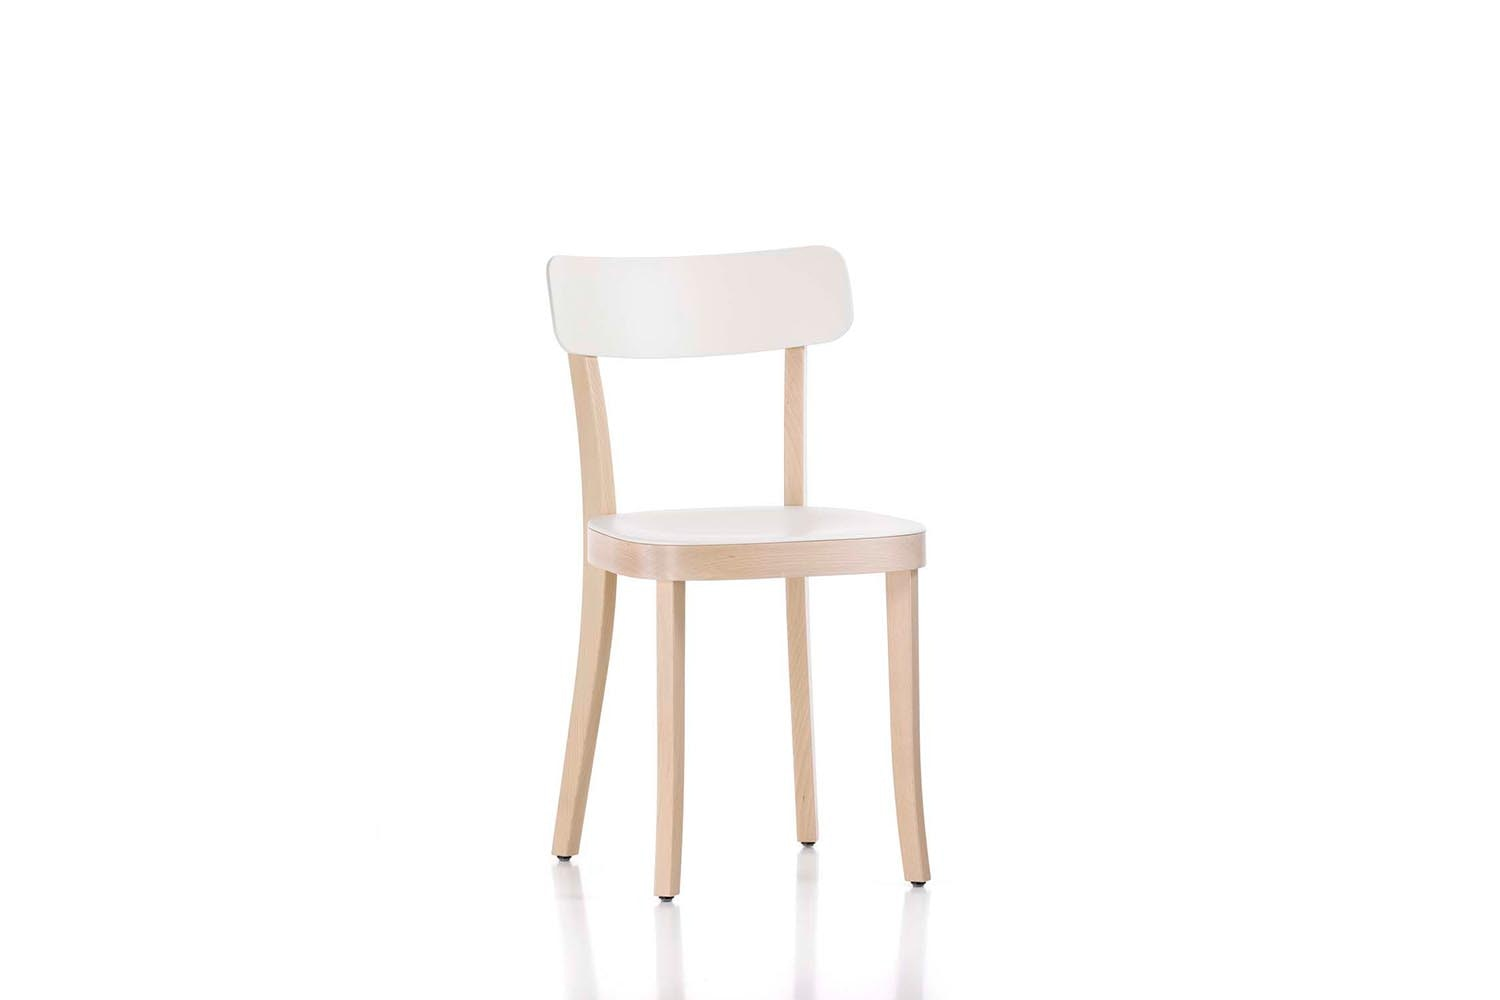 Basel Chair by Jasper Morrison for Vitra